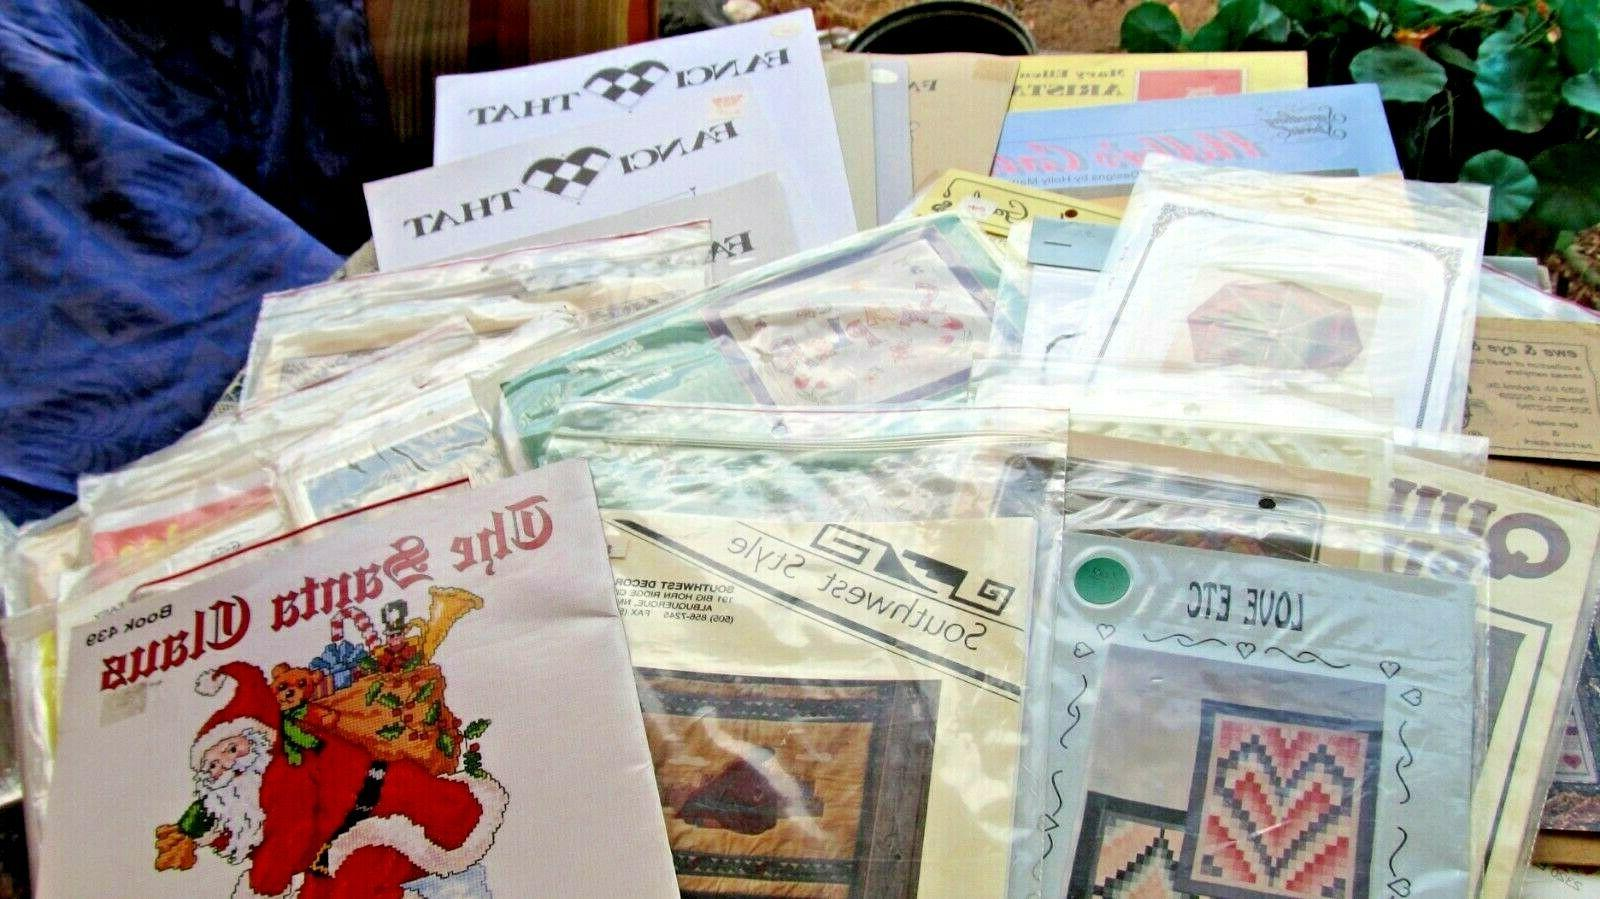 lot 87 cross stitch embroidery sewing crafts